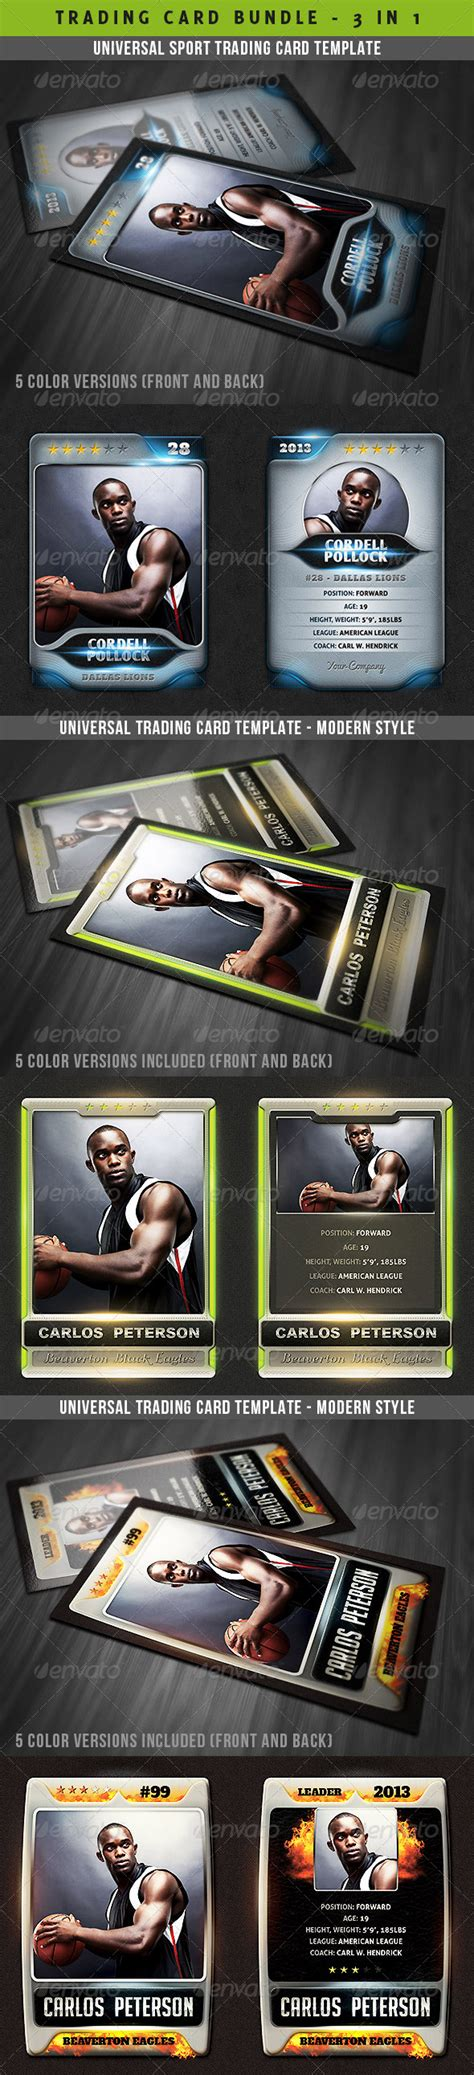 hockey trading card template photoshop universal sport trading cards bundle by discoverit